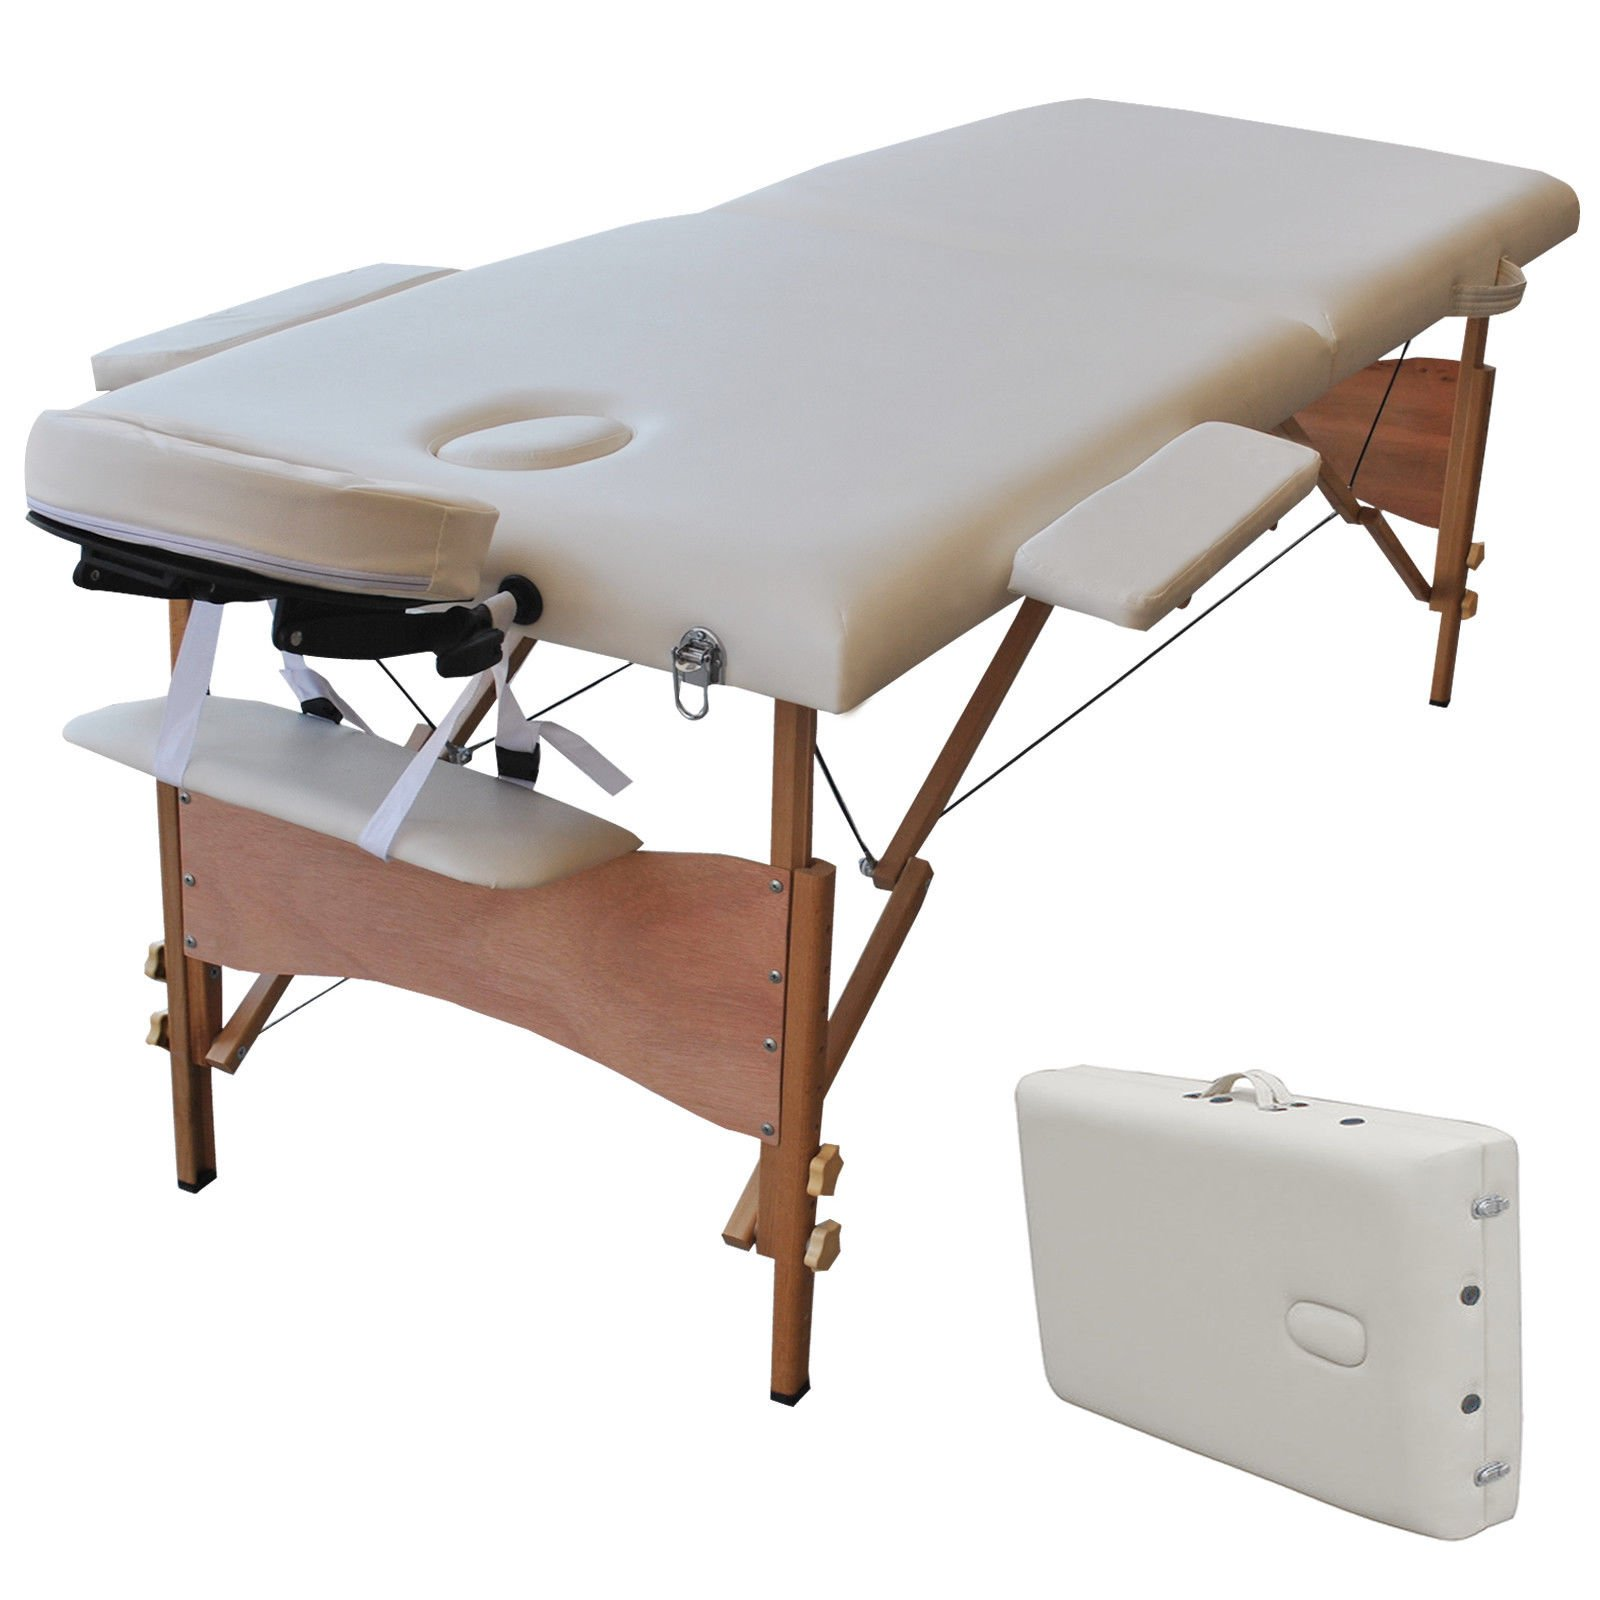 New 84''L Portable Massage Table Facial SPA Bed Tattoo w/Free Carry Case White